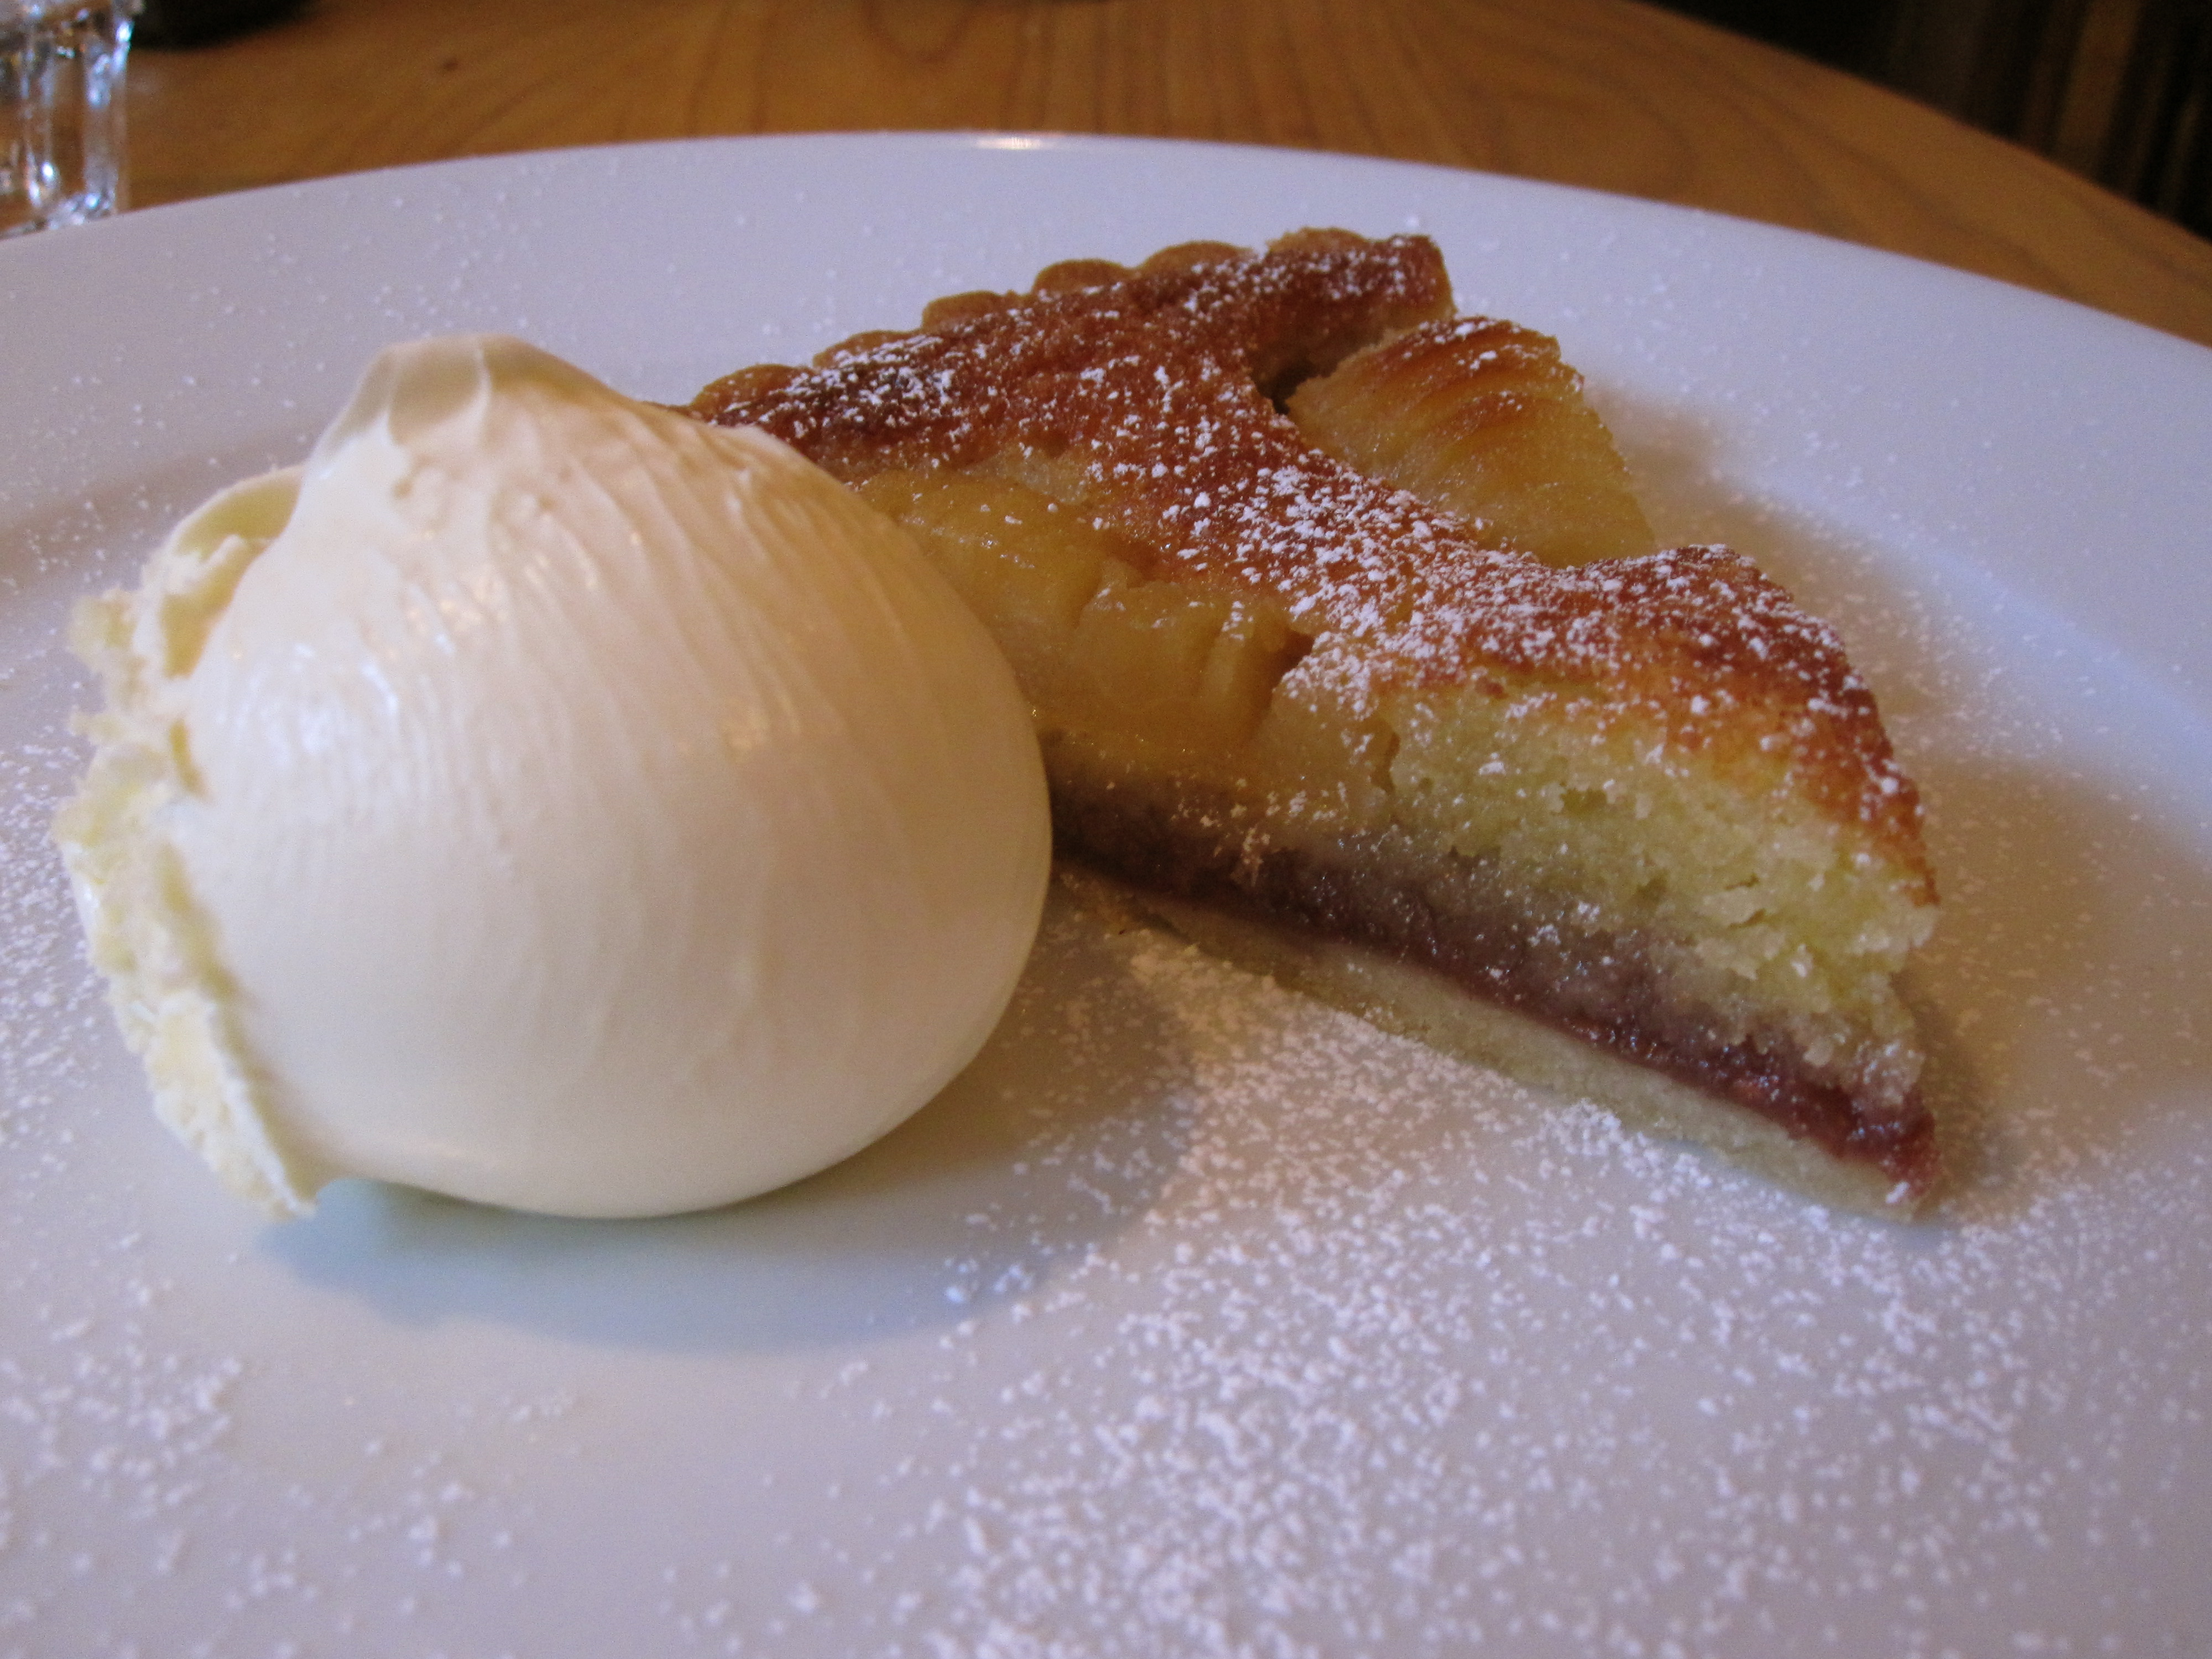 File:pear and almond tart at st. petrocs hotel.jpg wikimedia commons